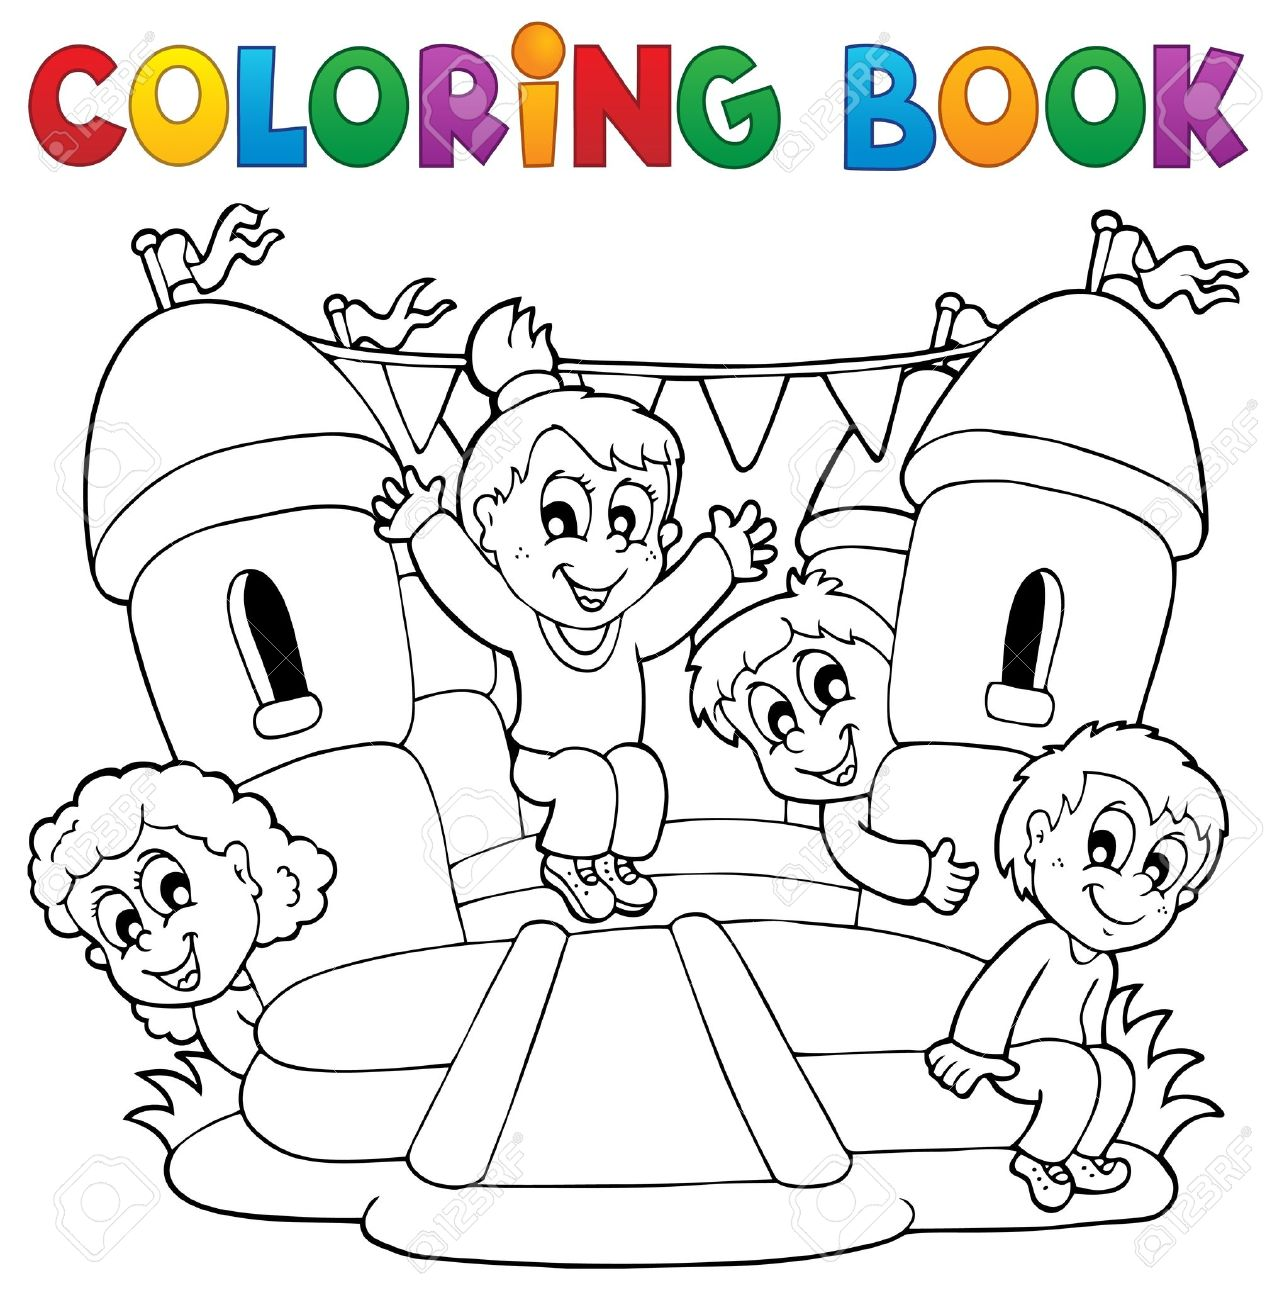 Coloring Book Kids Play Theme 5 Stock Vector